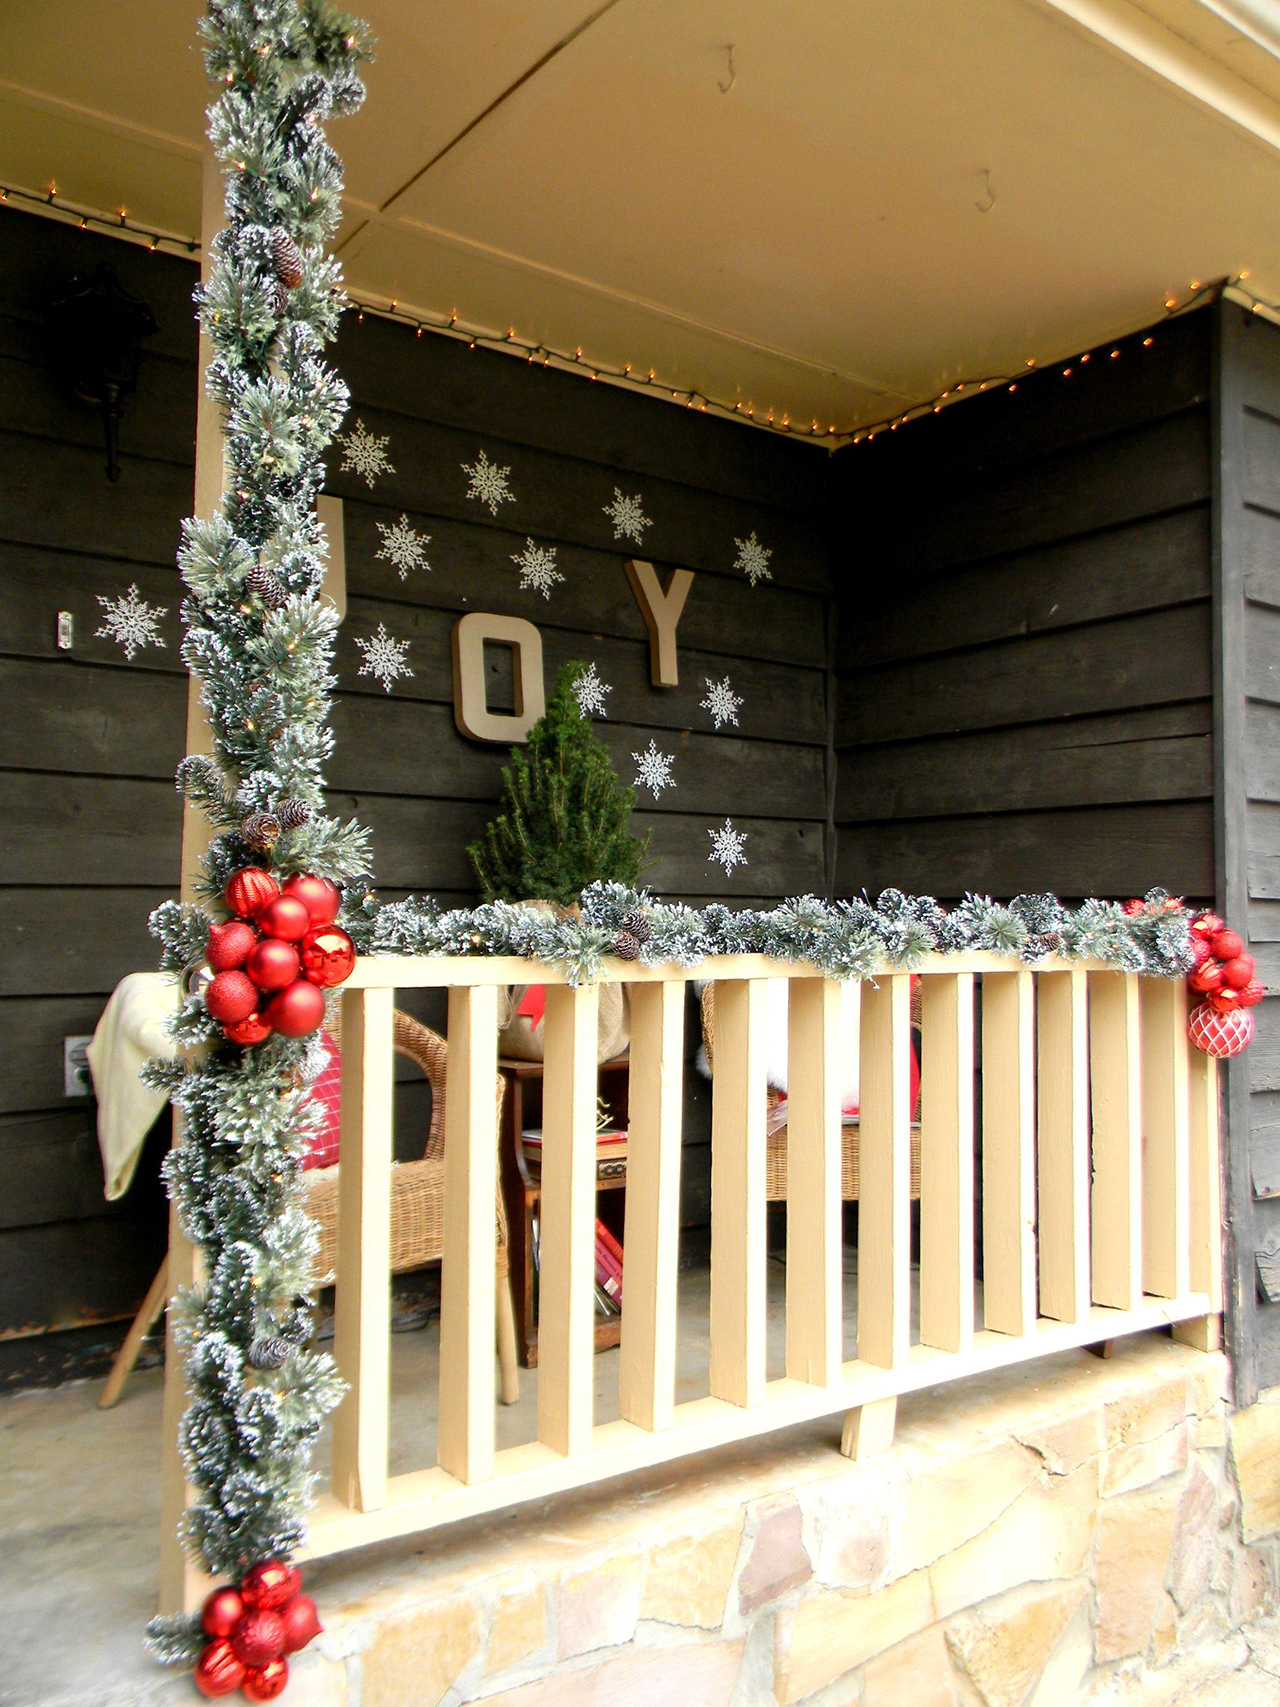 46 alternative ornament placement - Christmas Porch Decor